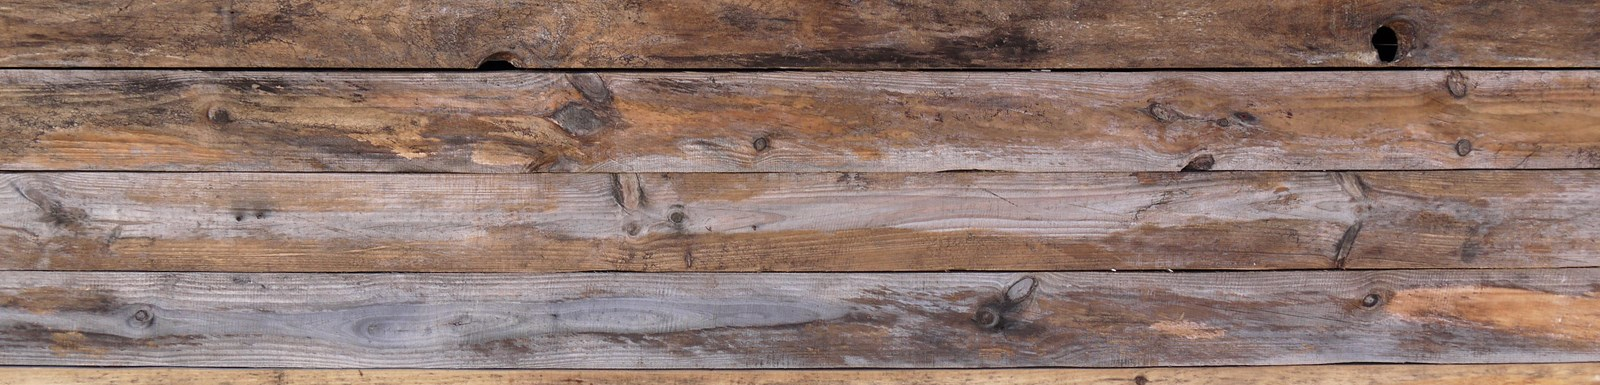 old pine board texture